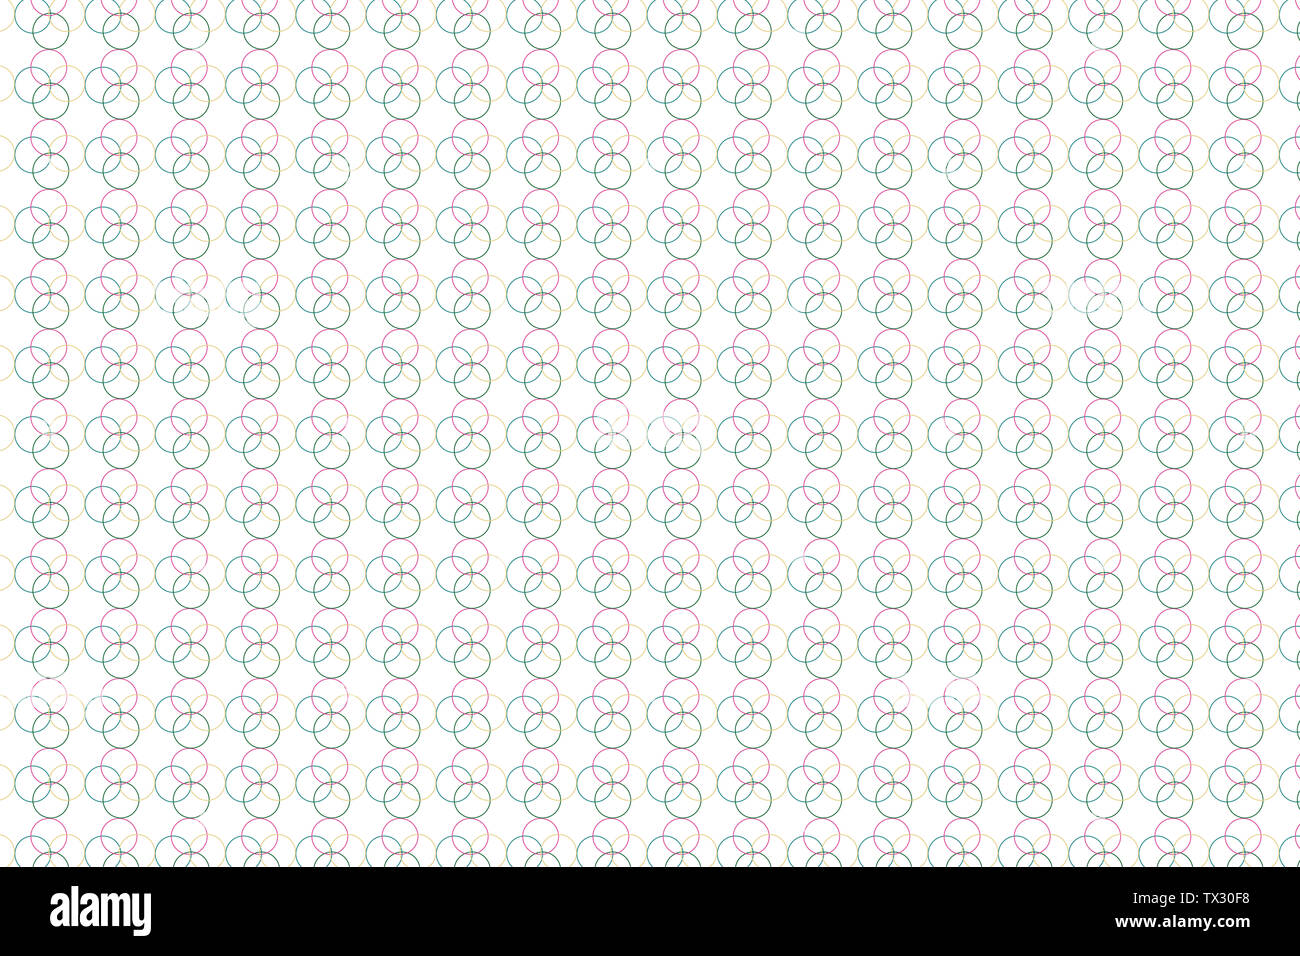 Circle texture illustration, abstract circle on white background, - Stock Image